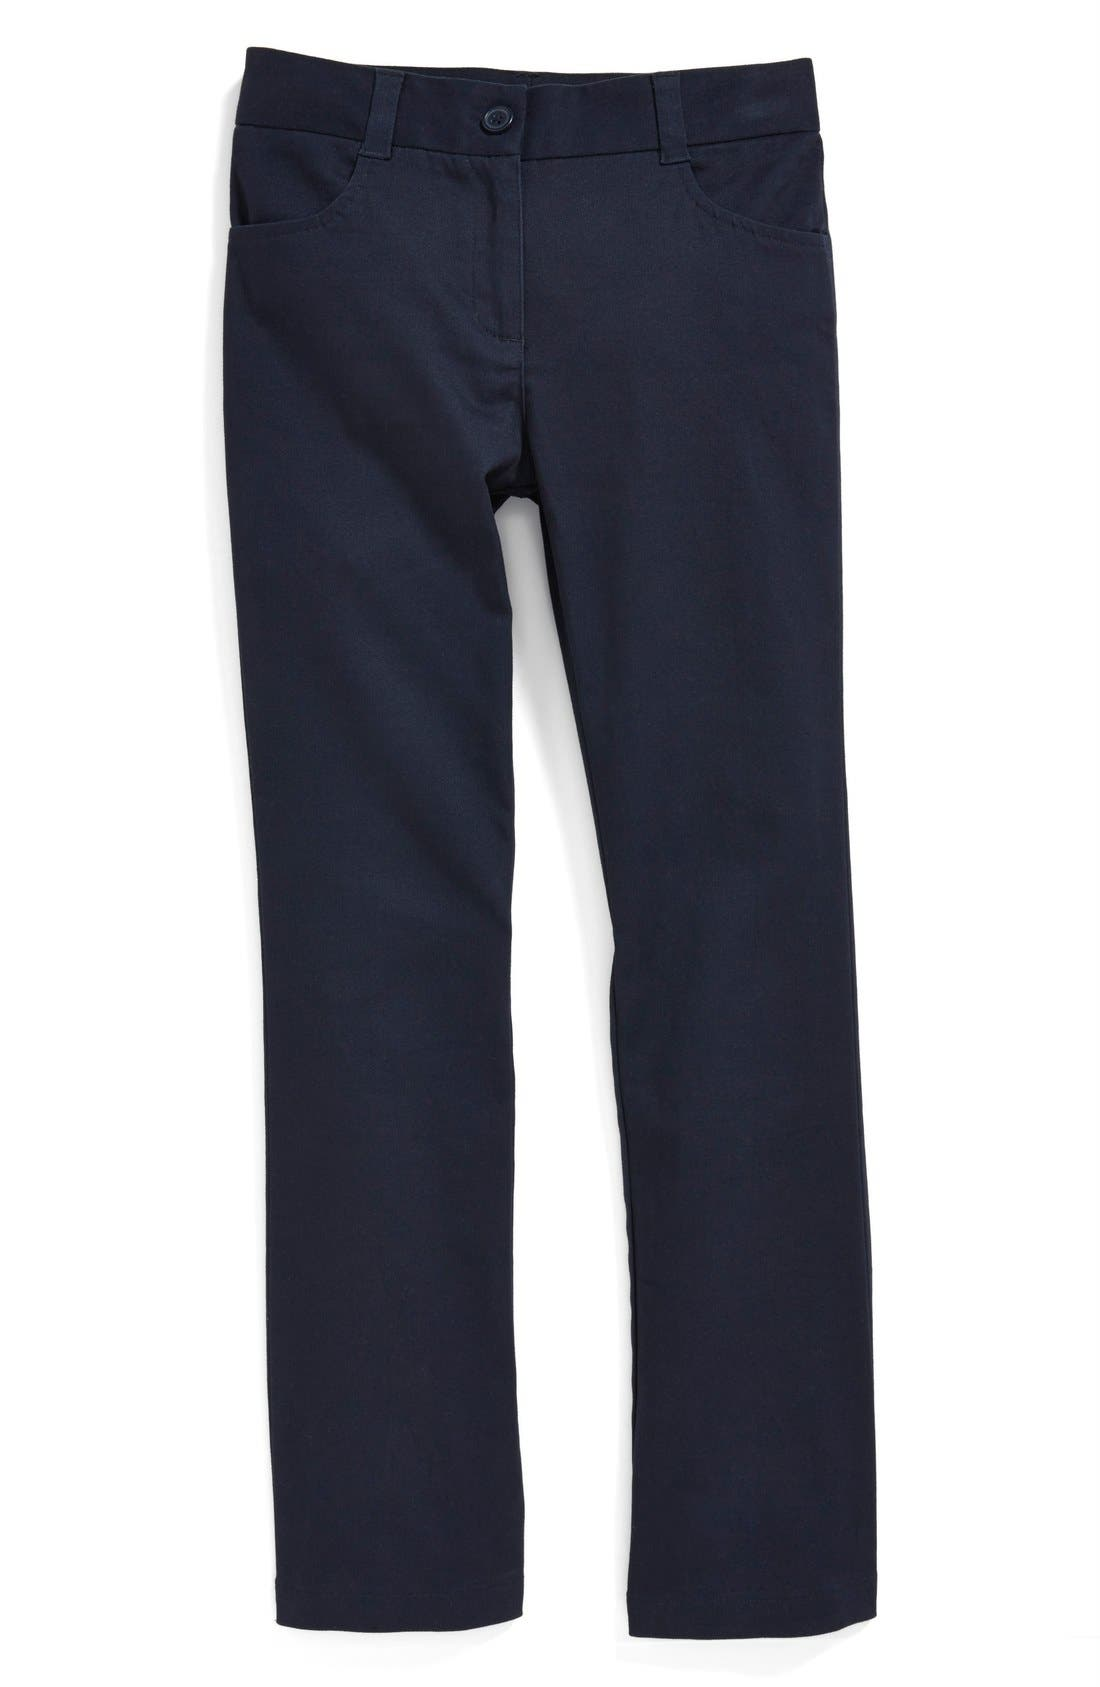 Alternate Image 1 Selected - Nordstrom Straight Fit Stretch Cotton Pants (Little Girls & Big Girls) (Online Only)